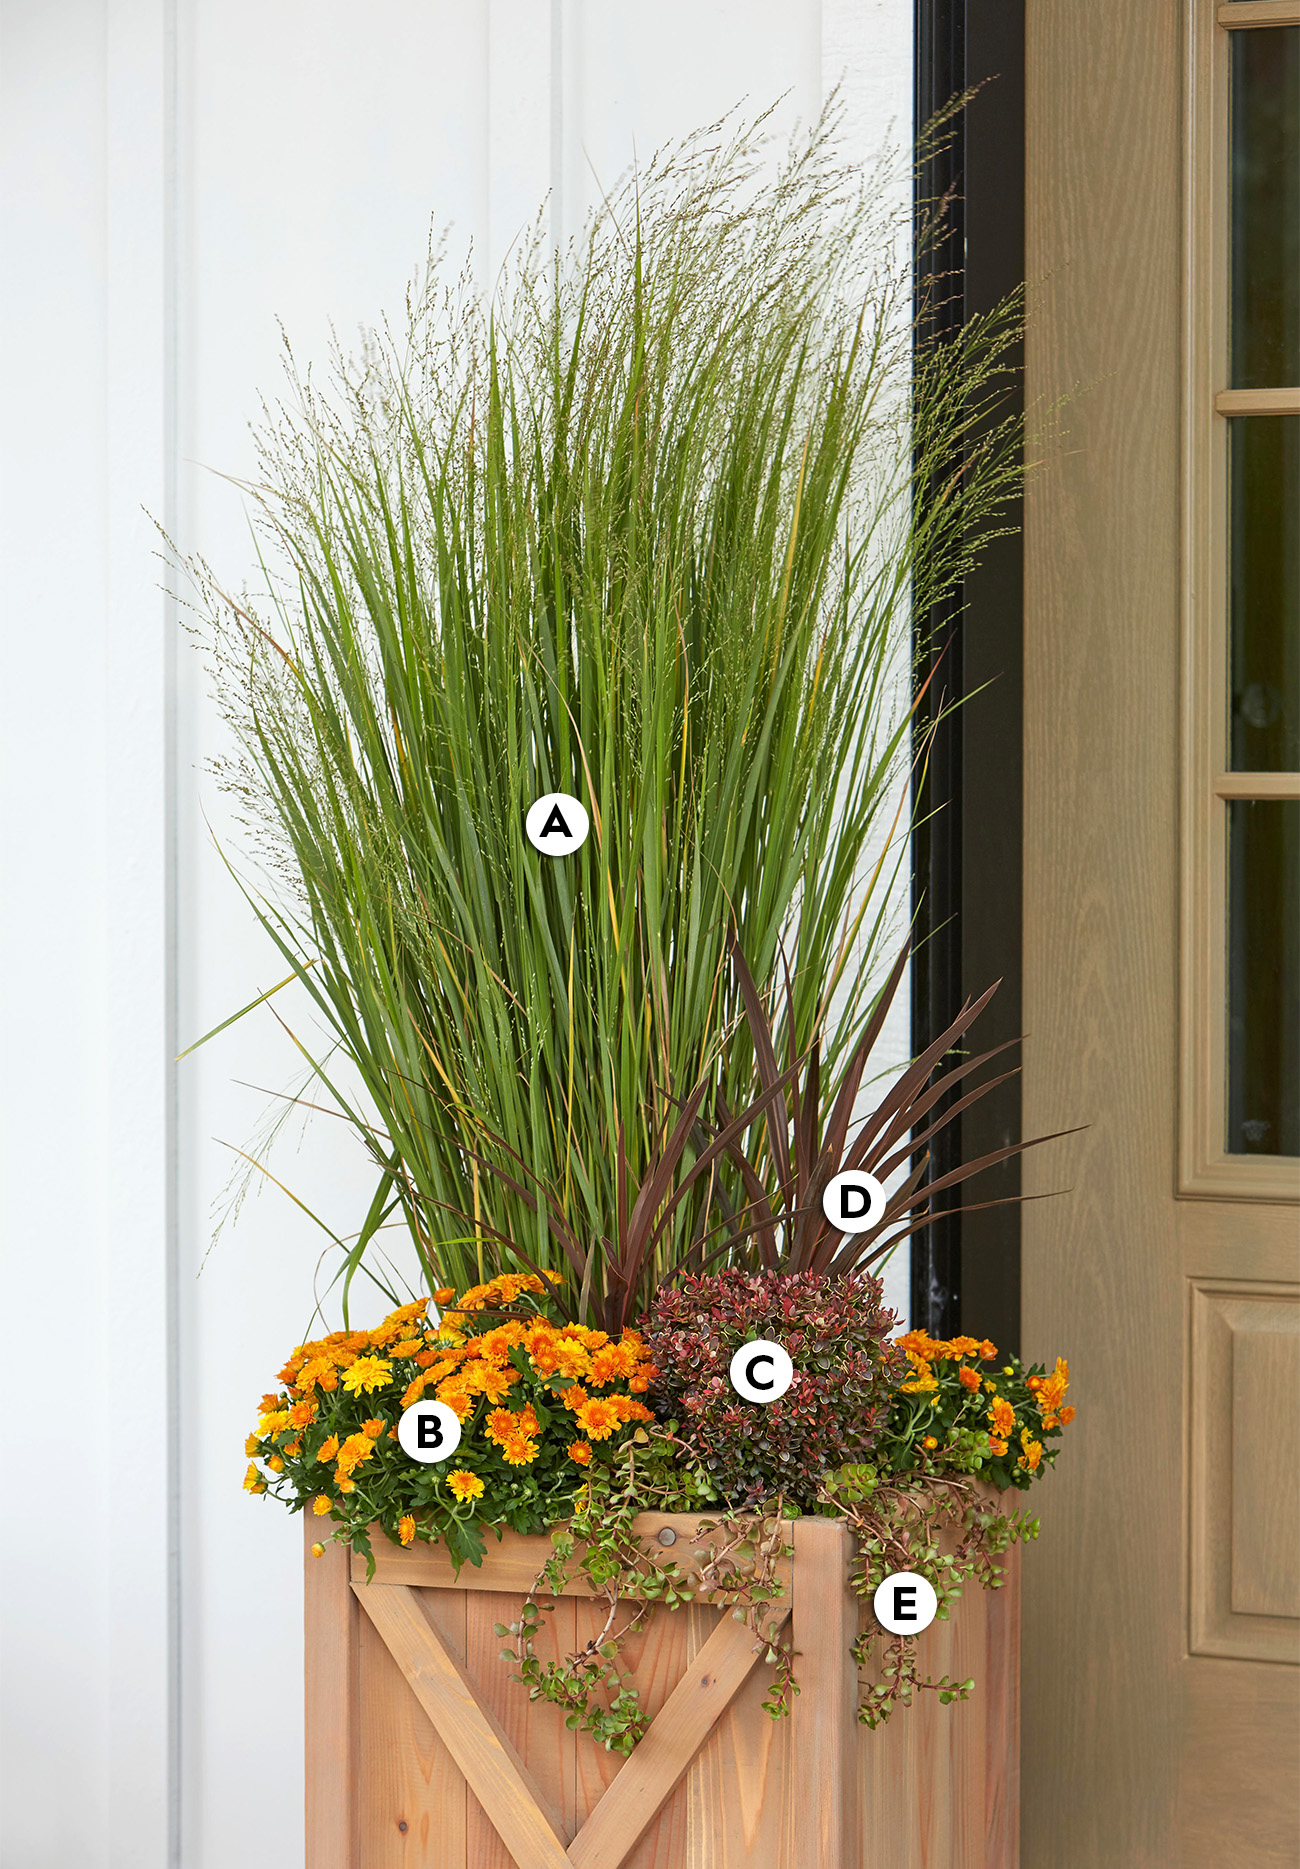 Towering Grass container garden